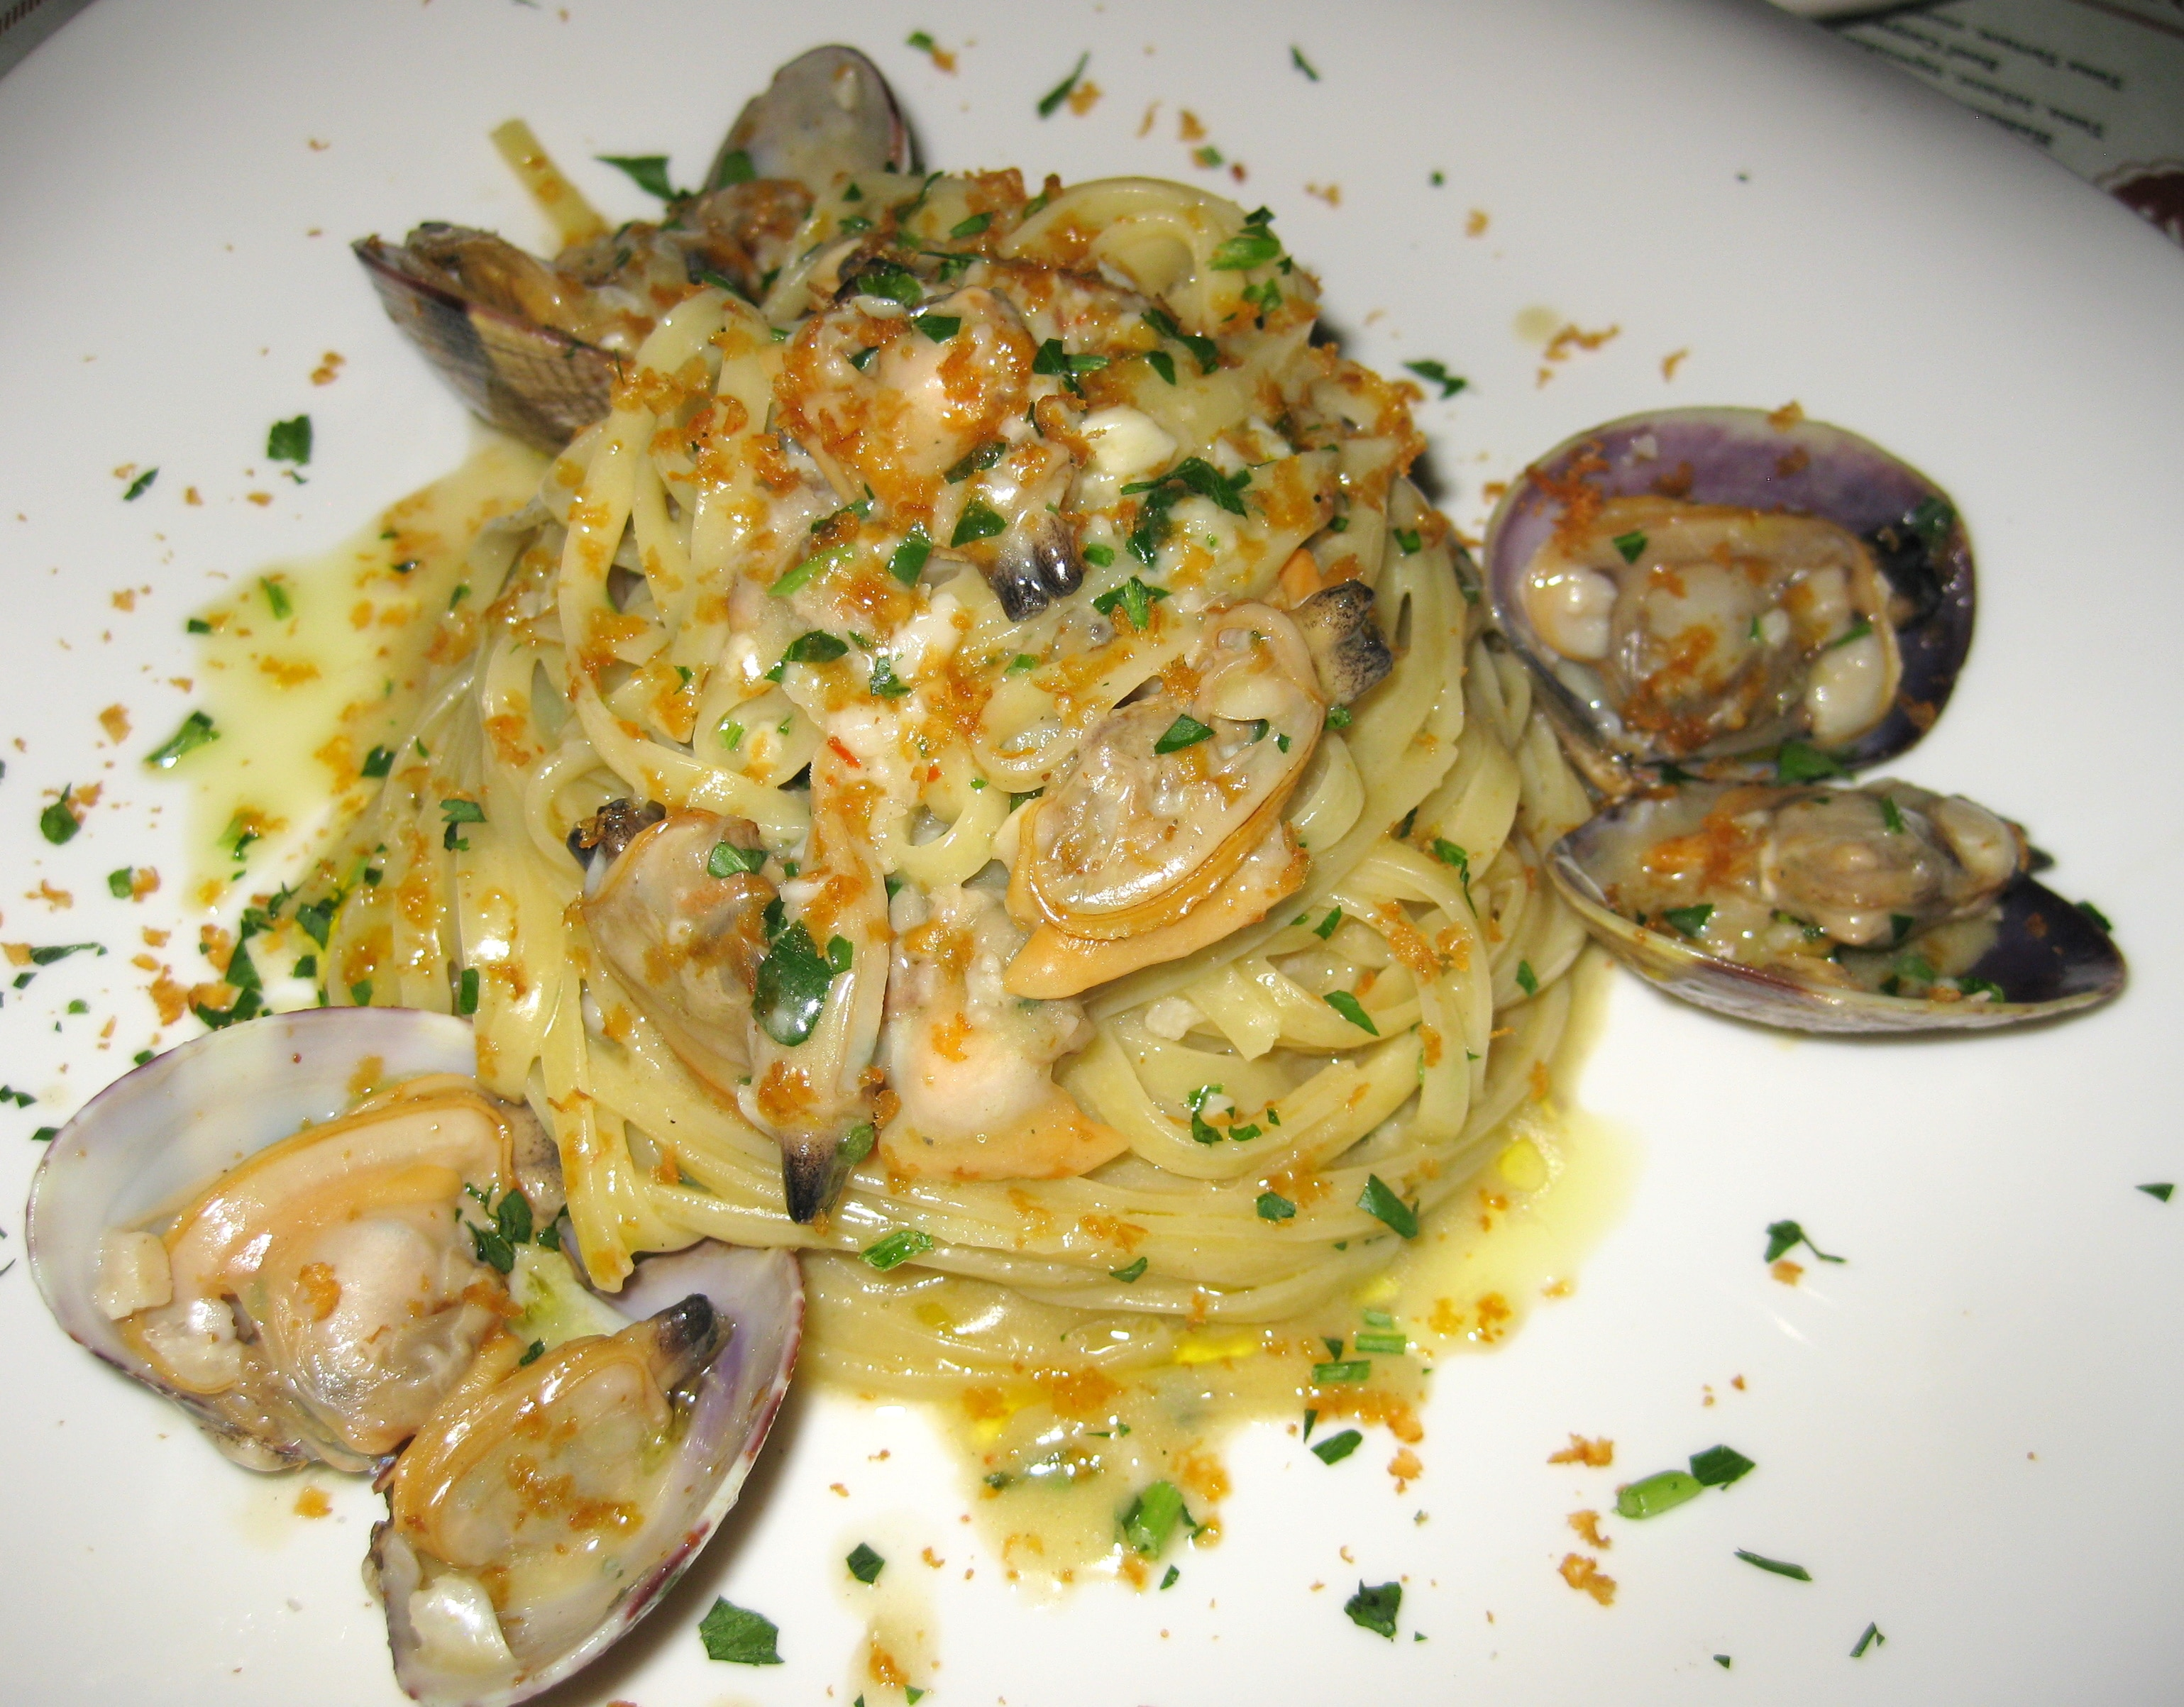 Pasta vongole with tagliarini, white wine and bottarga | GAYOT's Blog